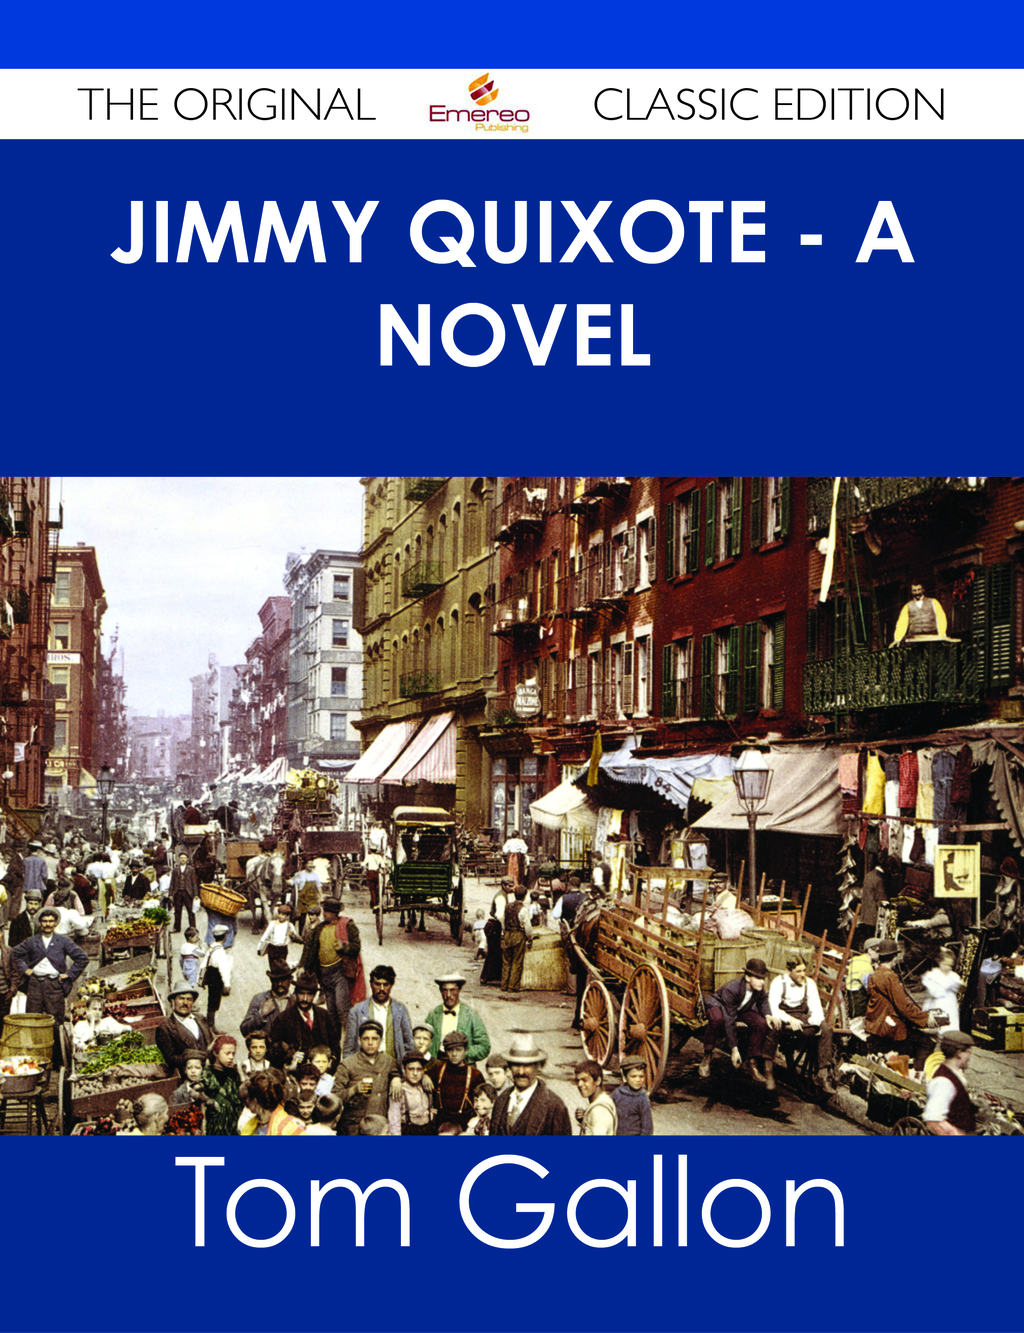 Jimmy Quixote - A novel - The Original Classic Edition